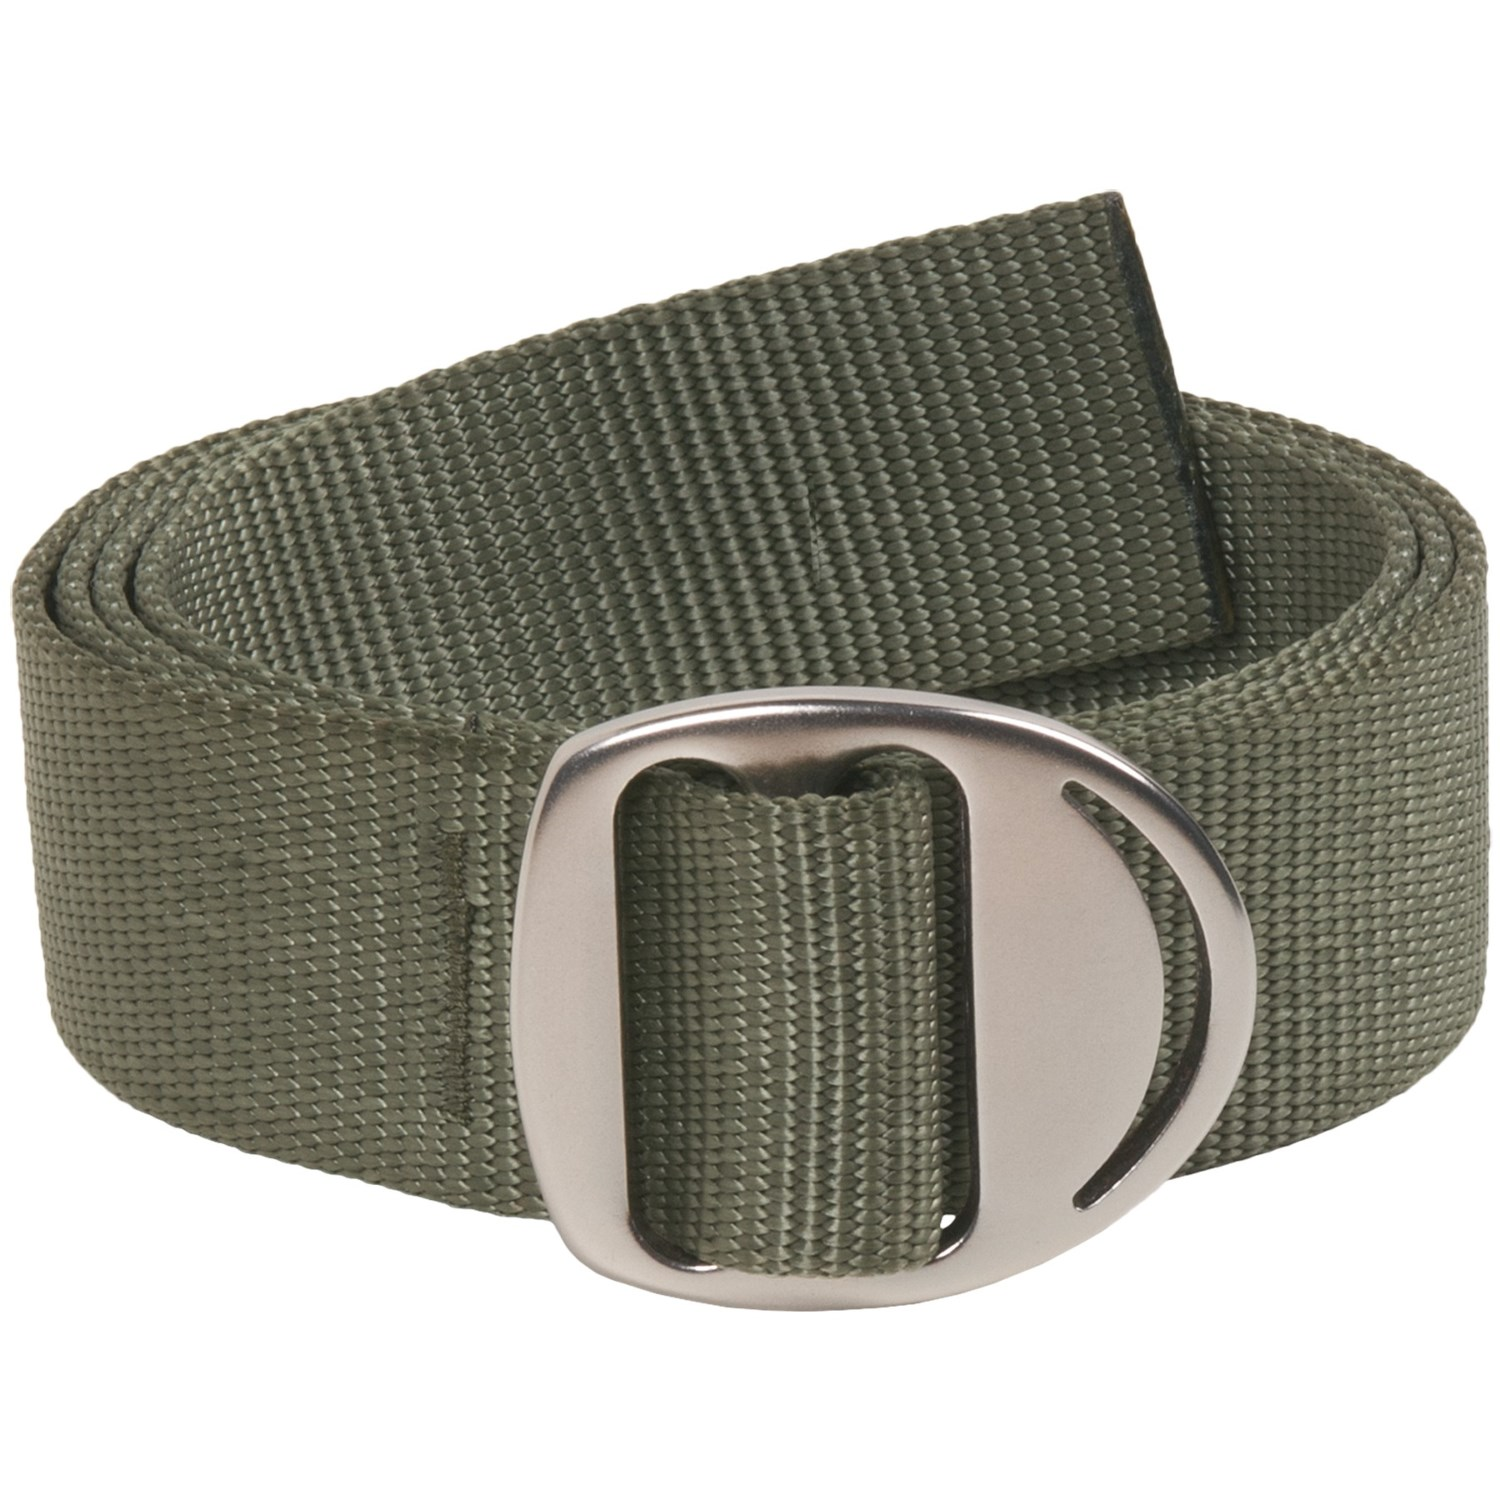 Bison Designs Web Belts